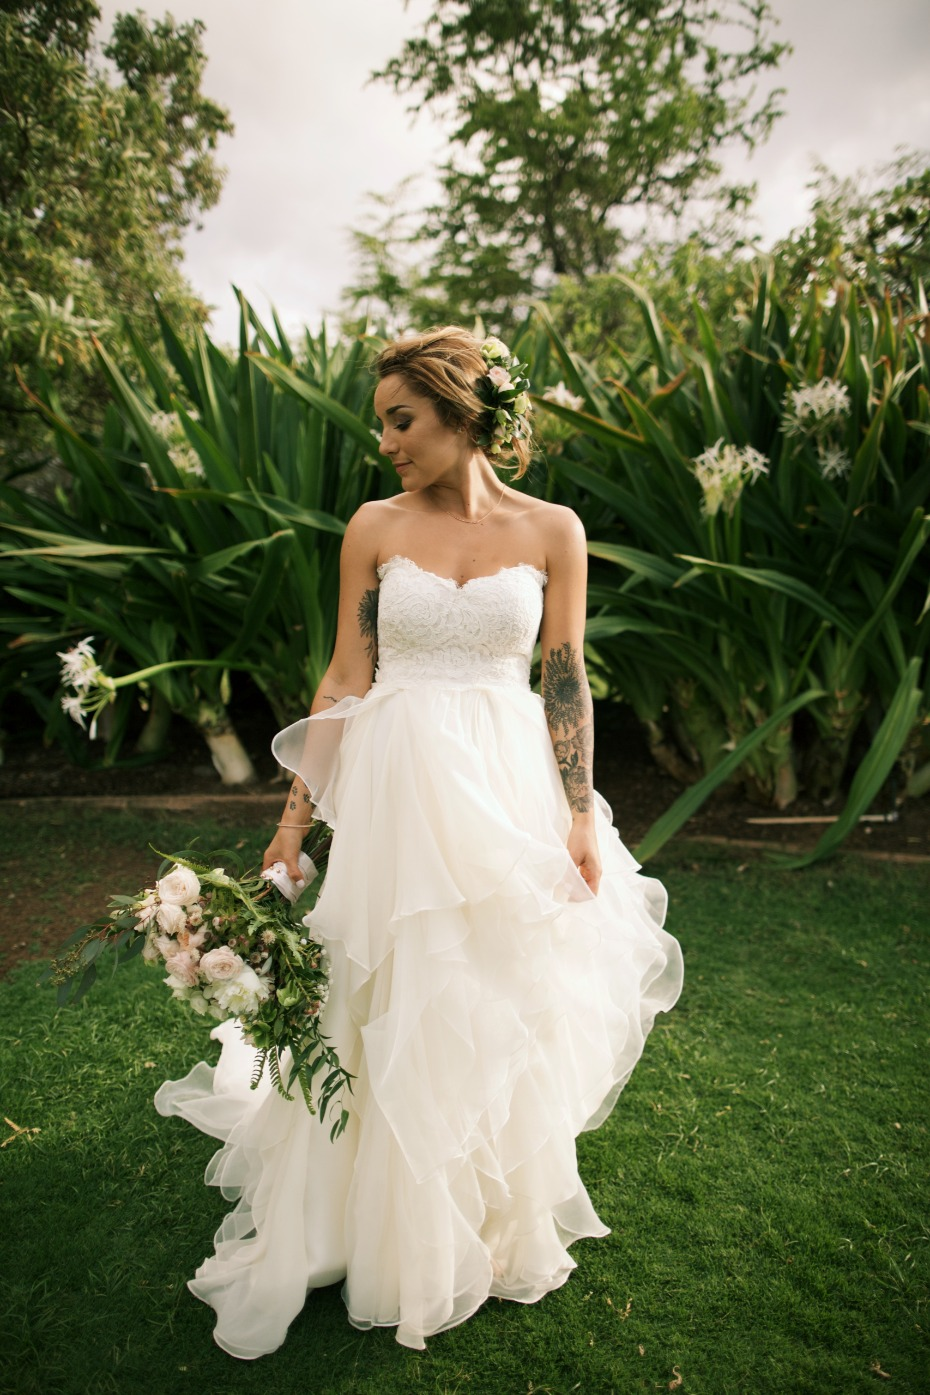 Flowing ruffle wedding dress from Hayley Paige